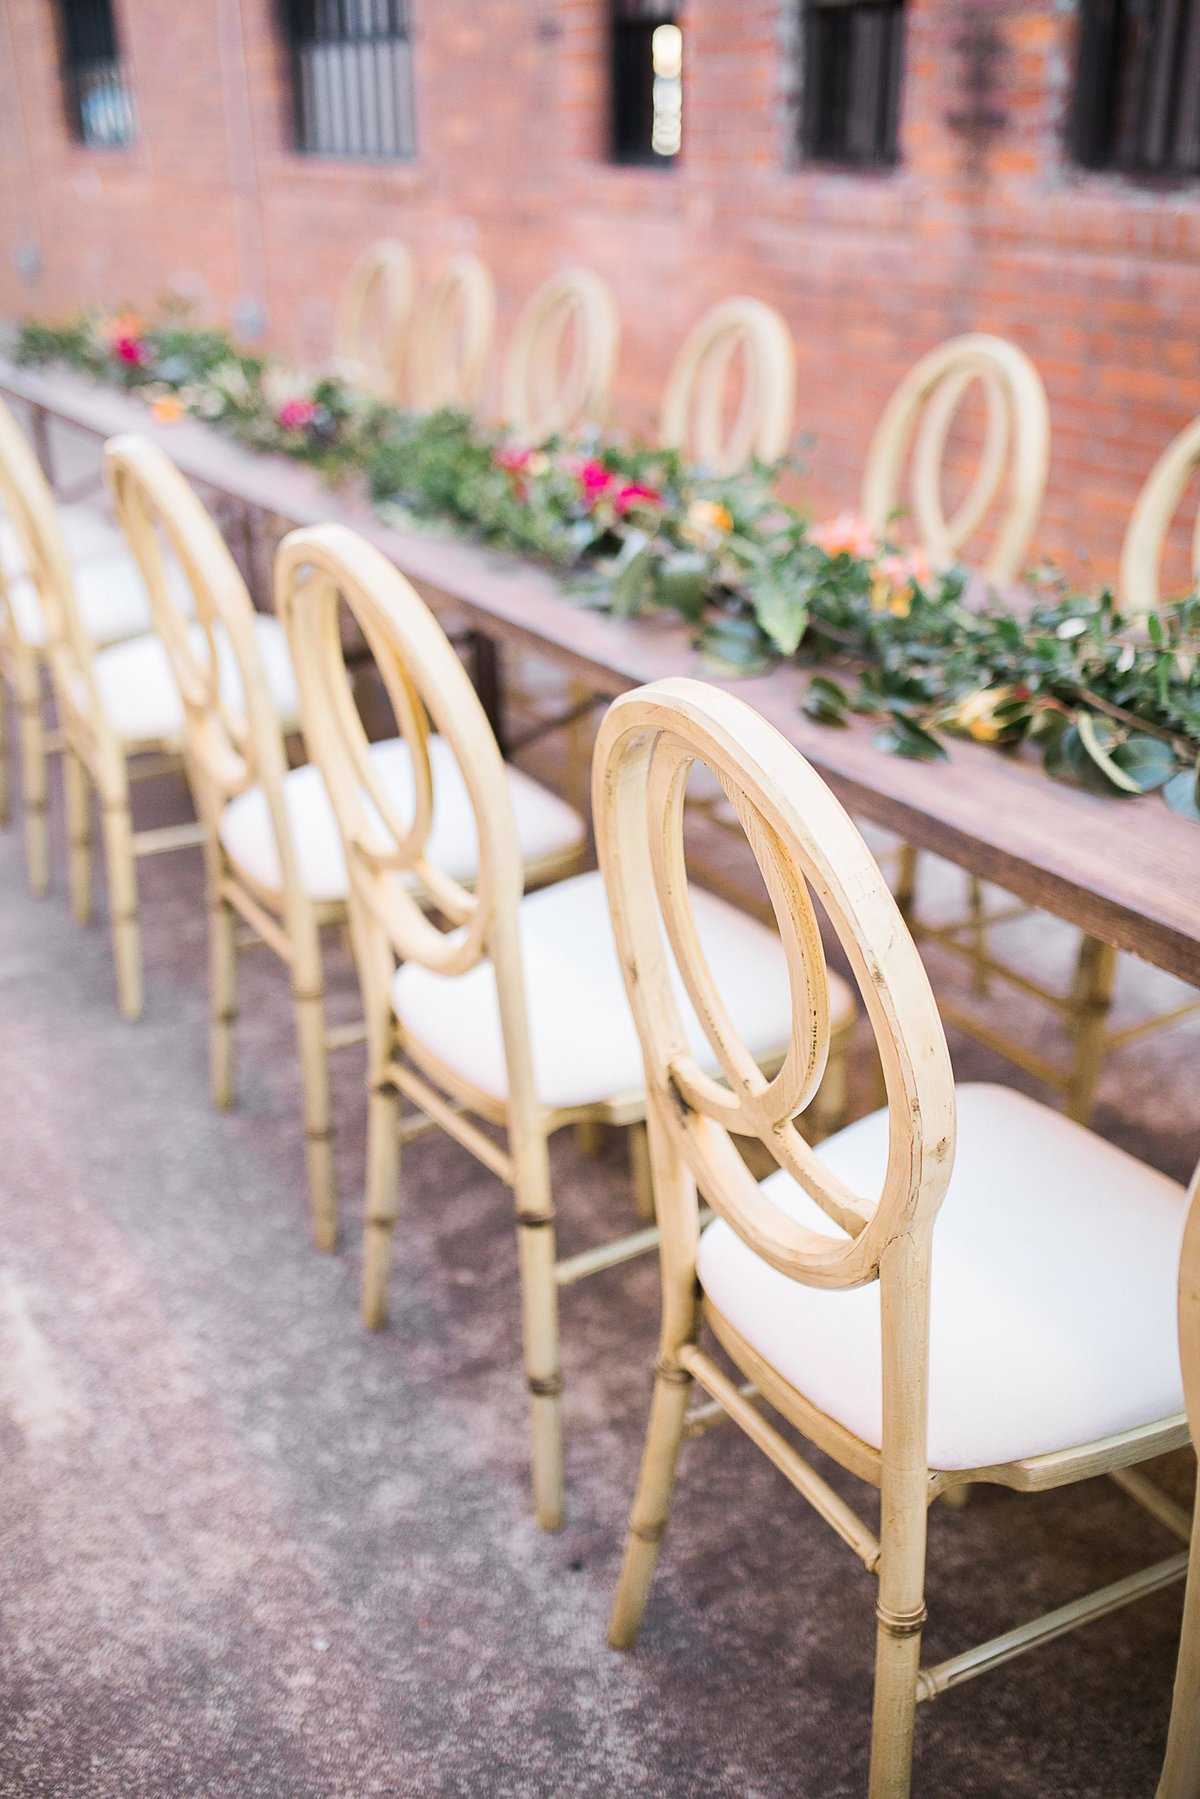 Wedding Photographer, detail shot of chairs at the reception